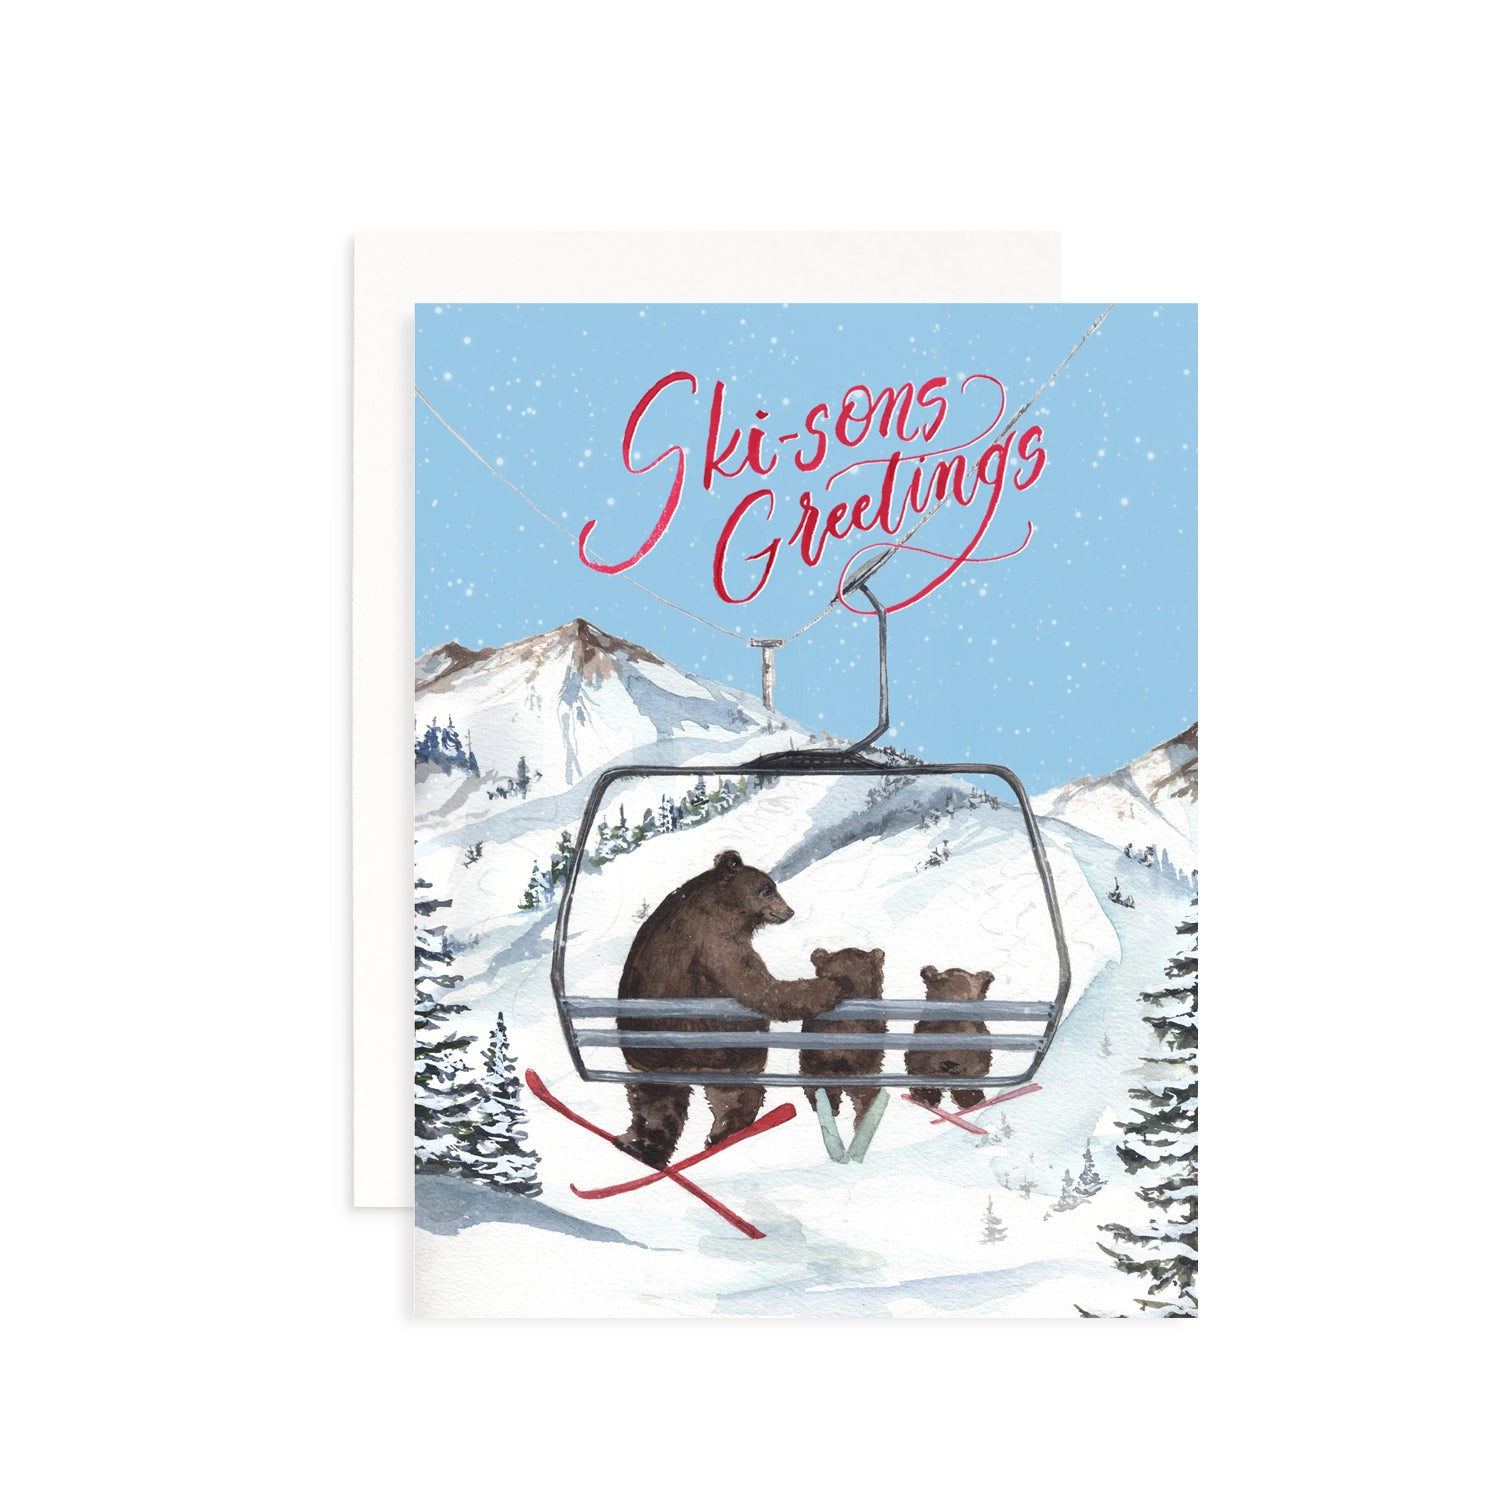 Ski-sons Greetings Card